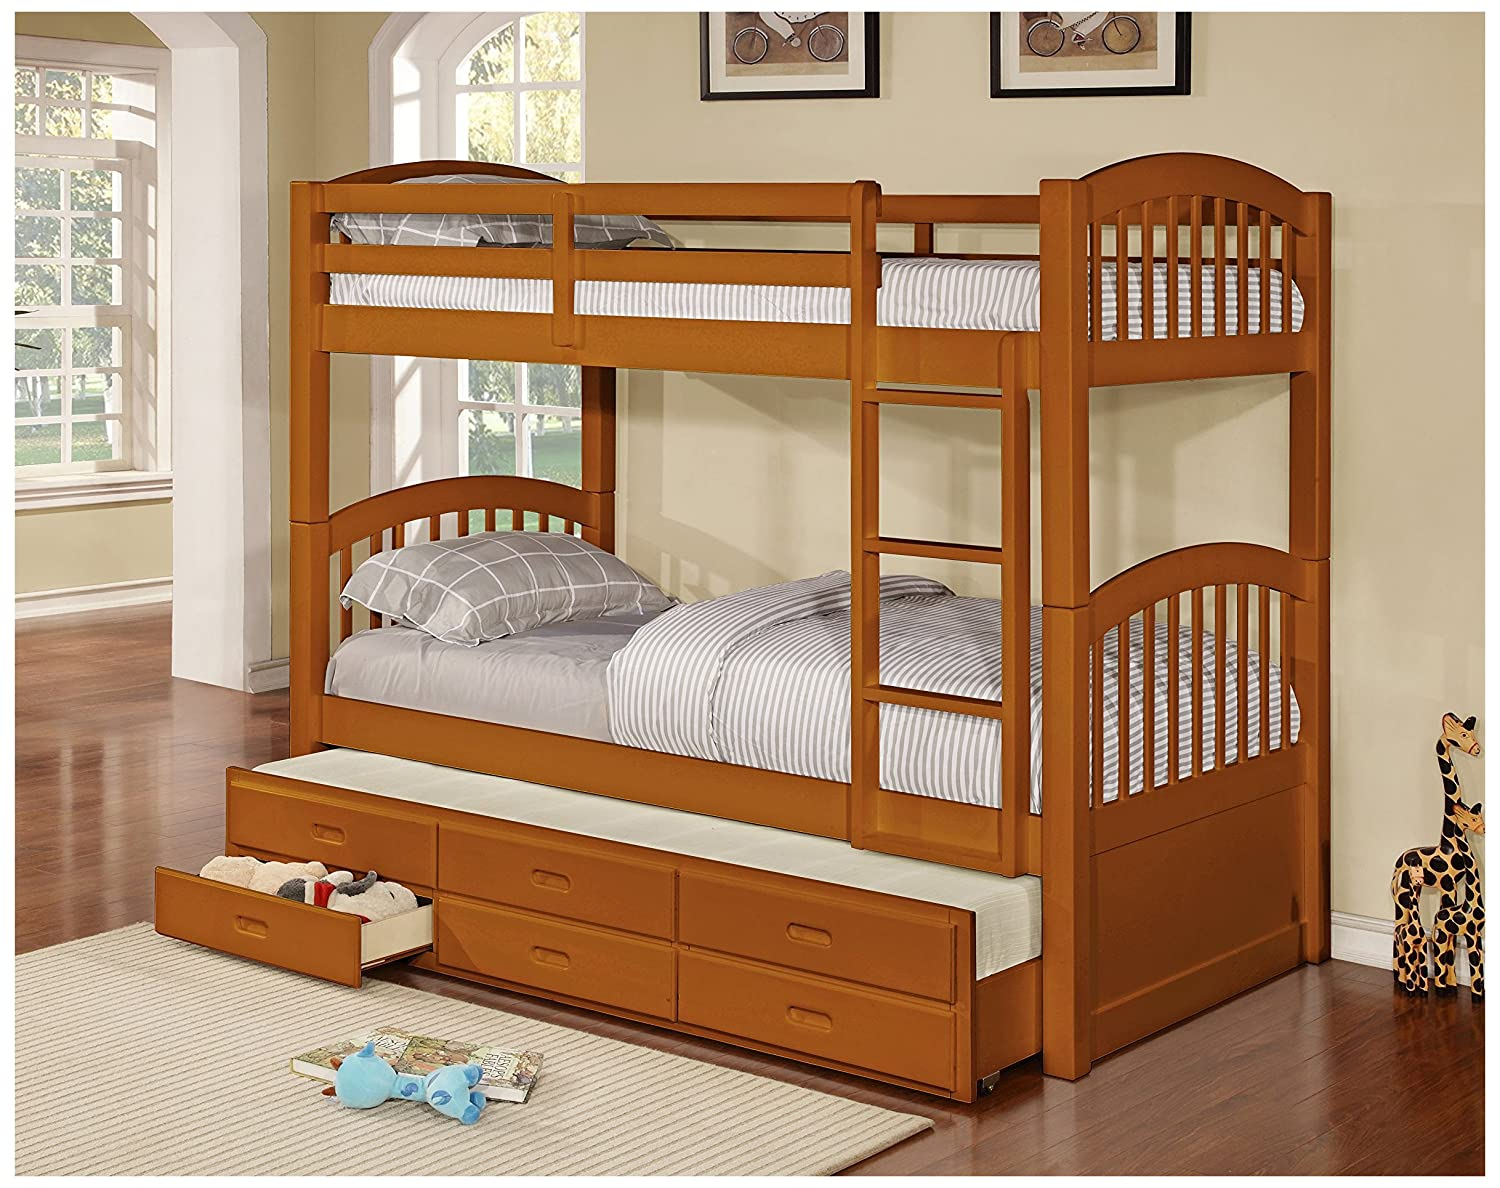 Amazon InRoom Designs B179H Wood Twin Size Bunk Bed Bunkbed With Trundle And Storage Drawers Honey Kitchen Dining